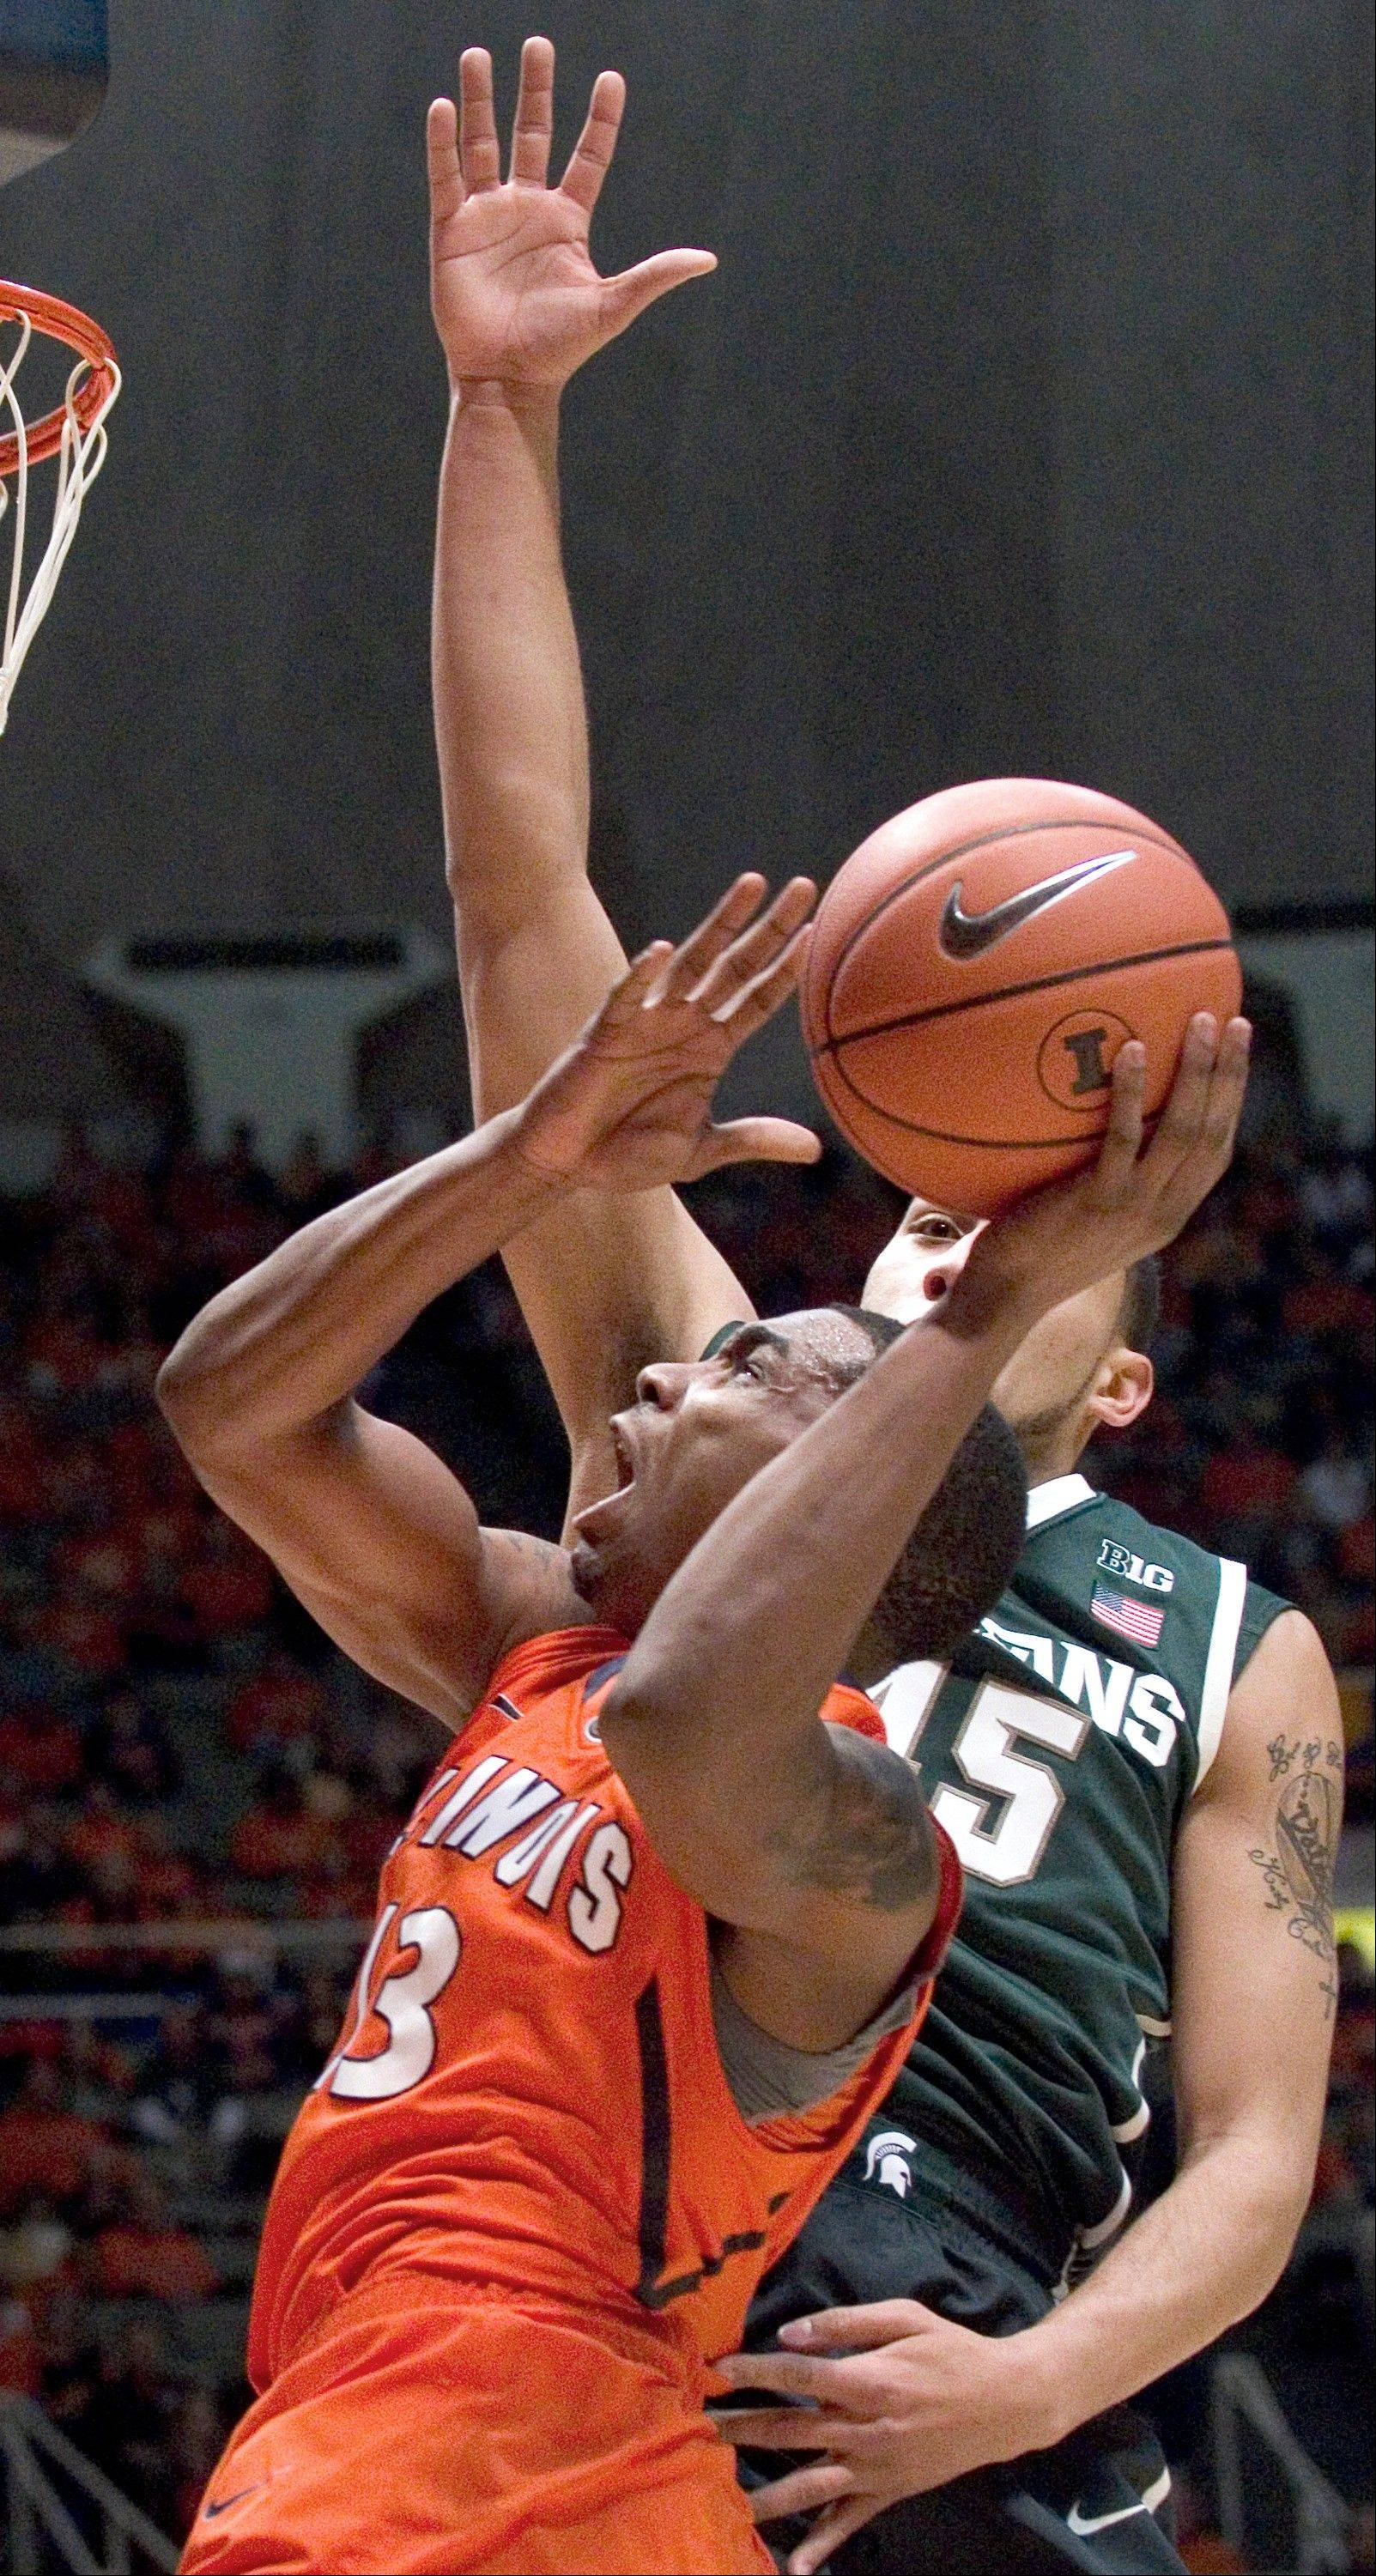 Illinois' Tracy Abrams (13) looks for a shot against Michigan State's Denzel Valentine (45) during Saturday night's game in Champaign. The Illini lost 78-62.